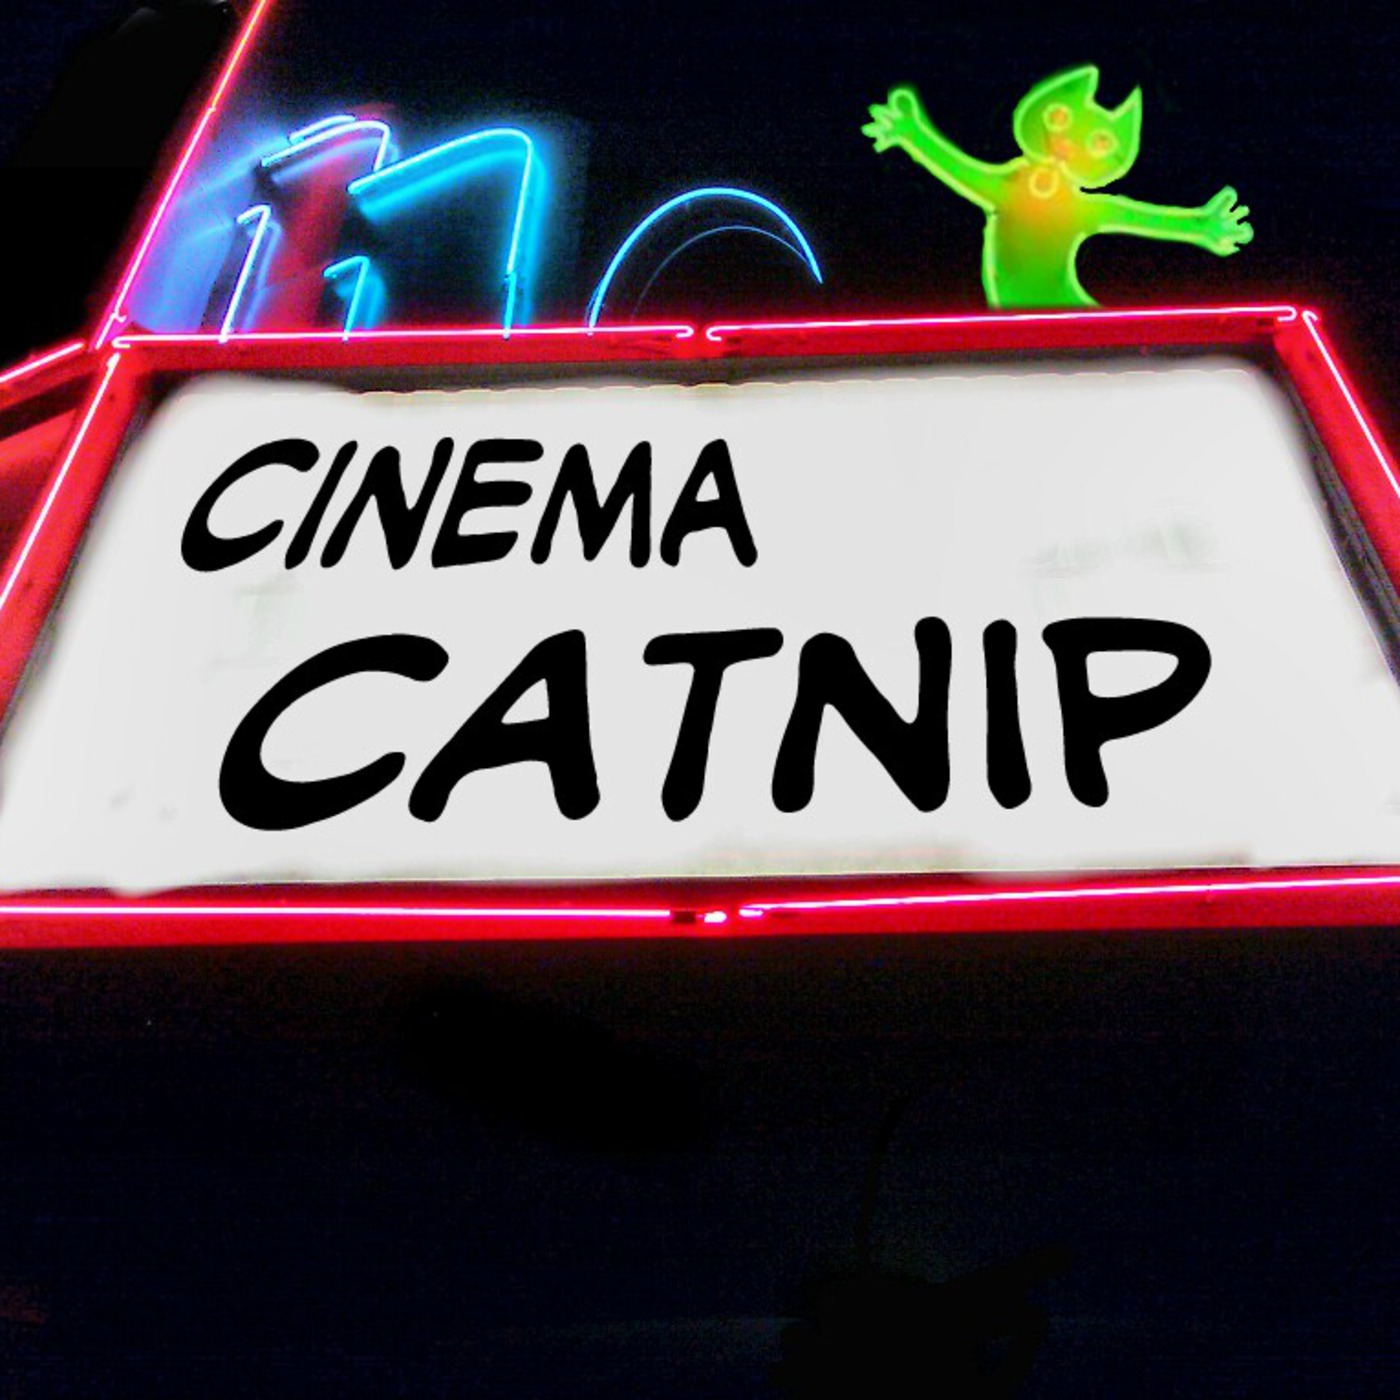 Cinema Catnip